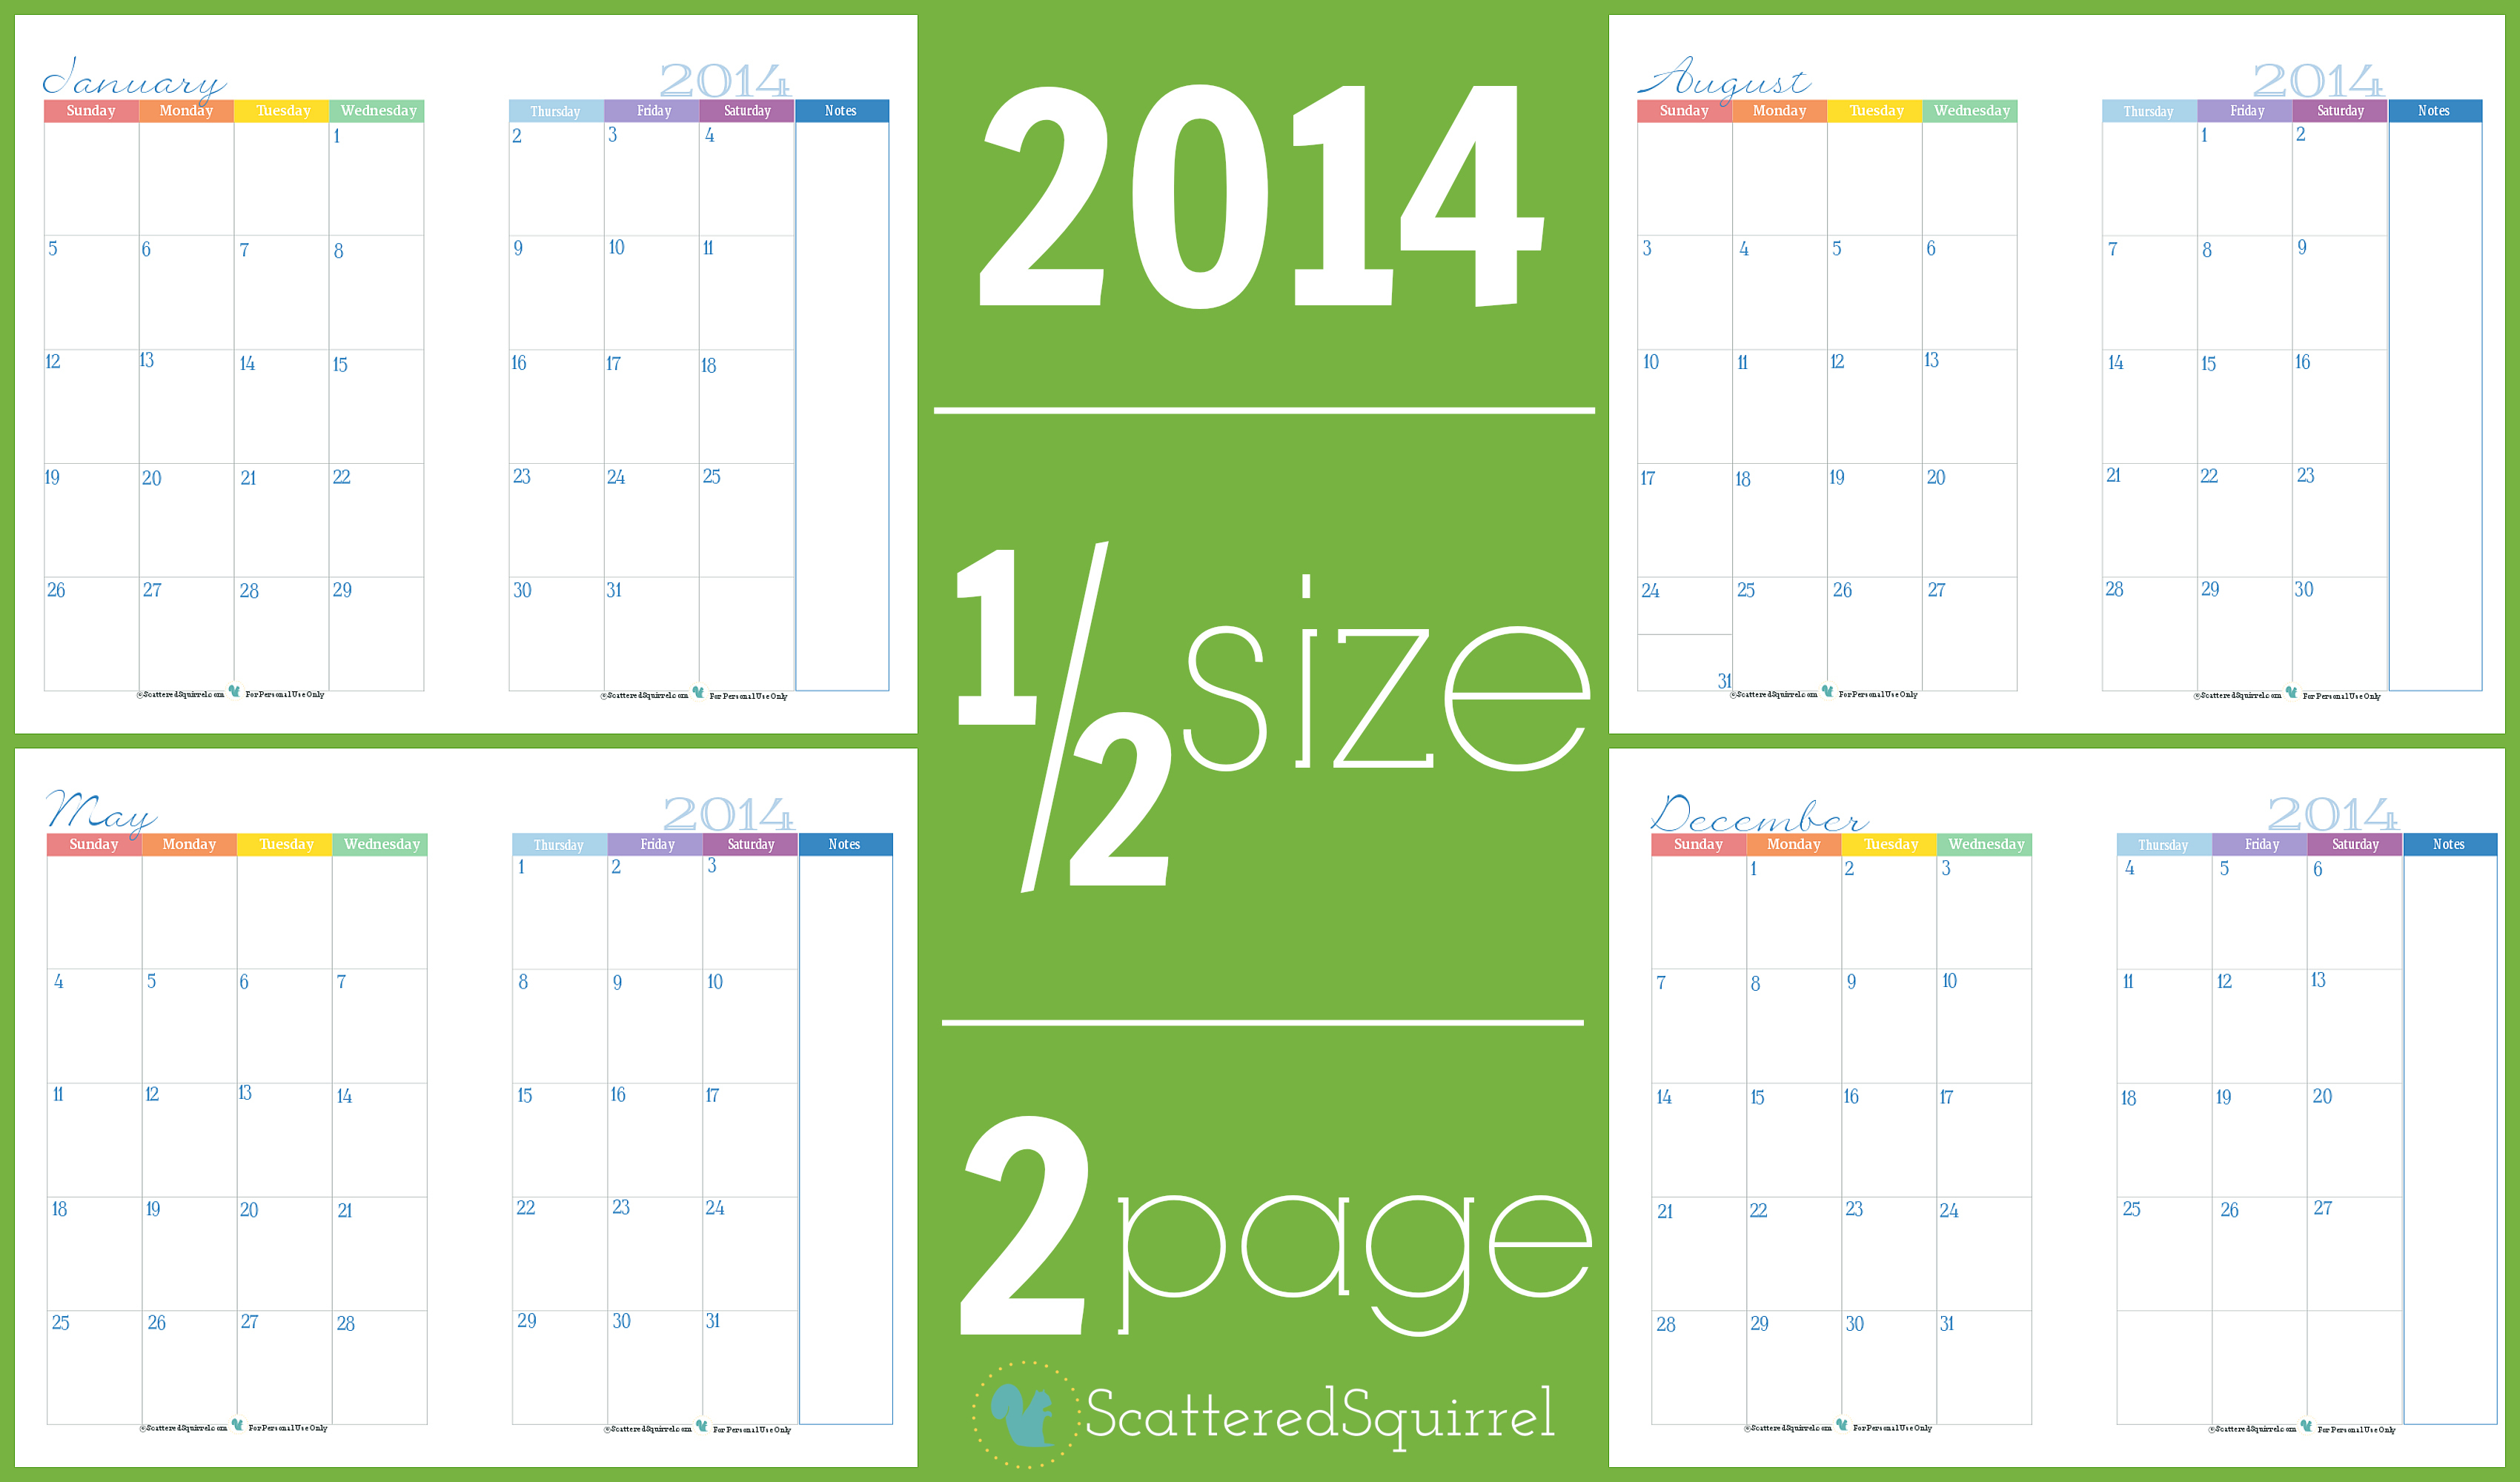 2014 Calendars: Part 3  Scattered Squirrel inside Scattered Squirrel Calendar